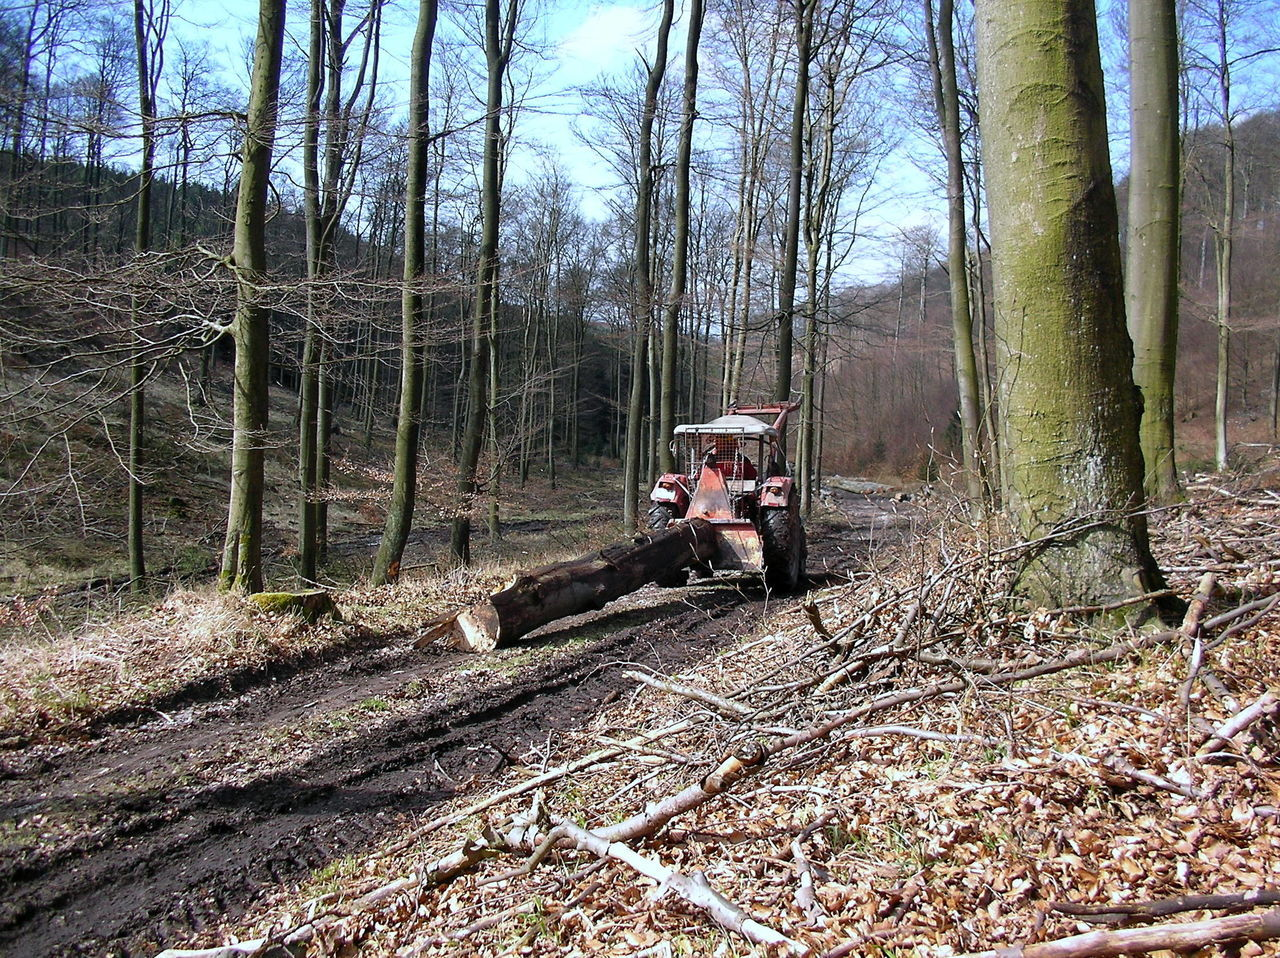 Beech Forest Brennholz Composition Day Forest Frühling Holz Schleppen Maschinenarbeit Outdoors Perspective The Way Forward Traktor Tree Wood Wood Wood - Material